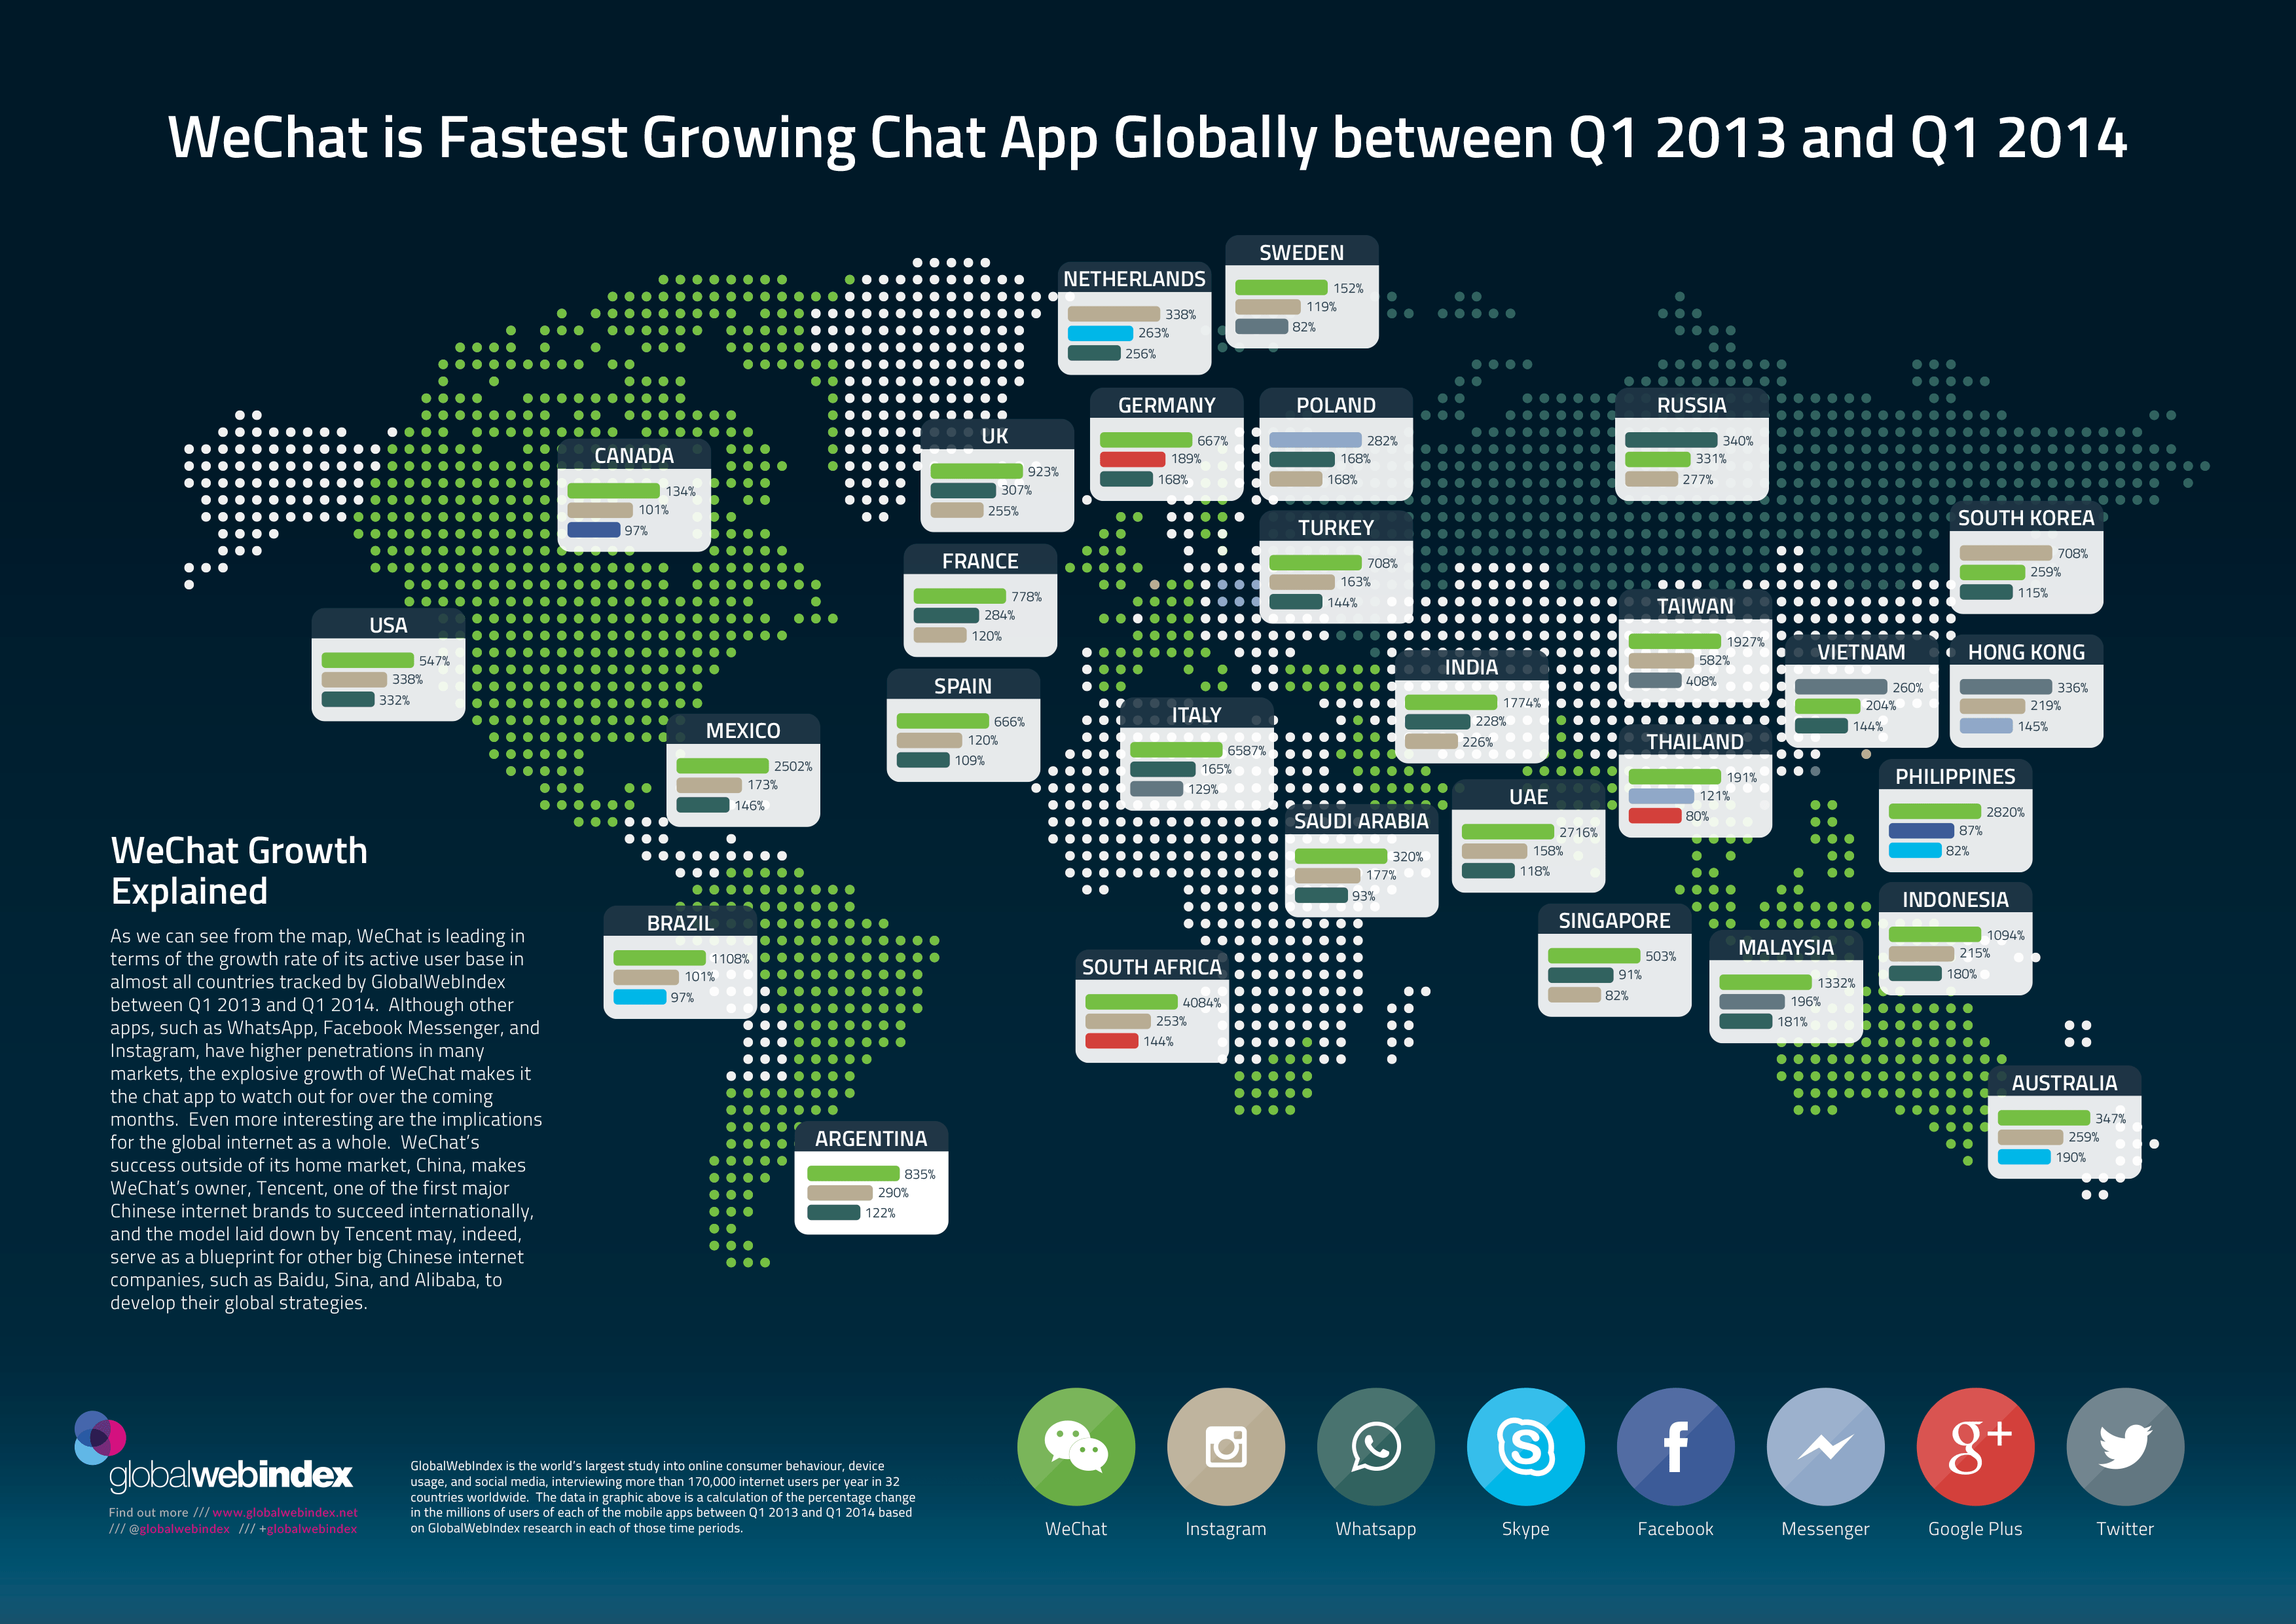 wechat global expansion 2014